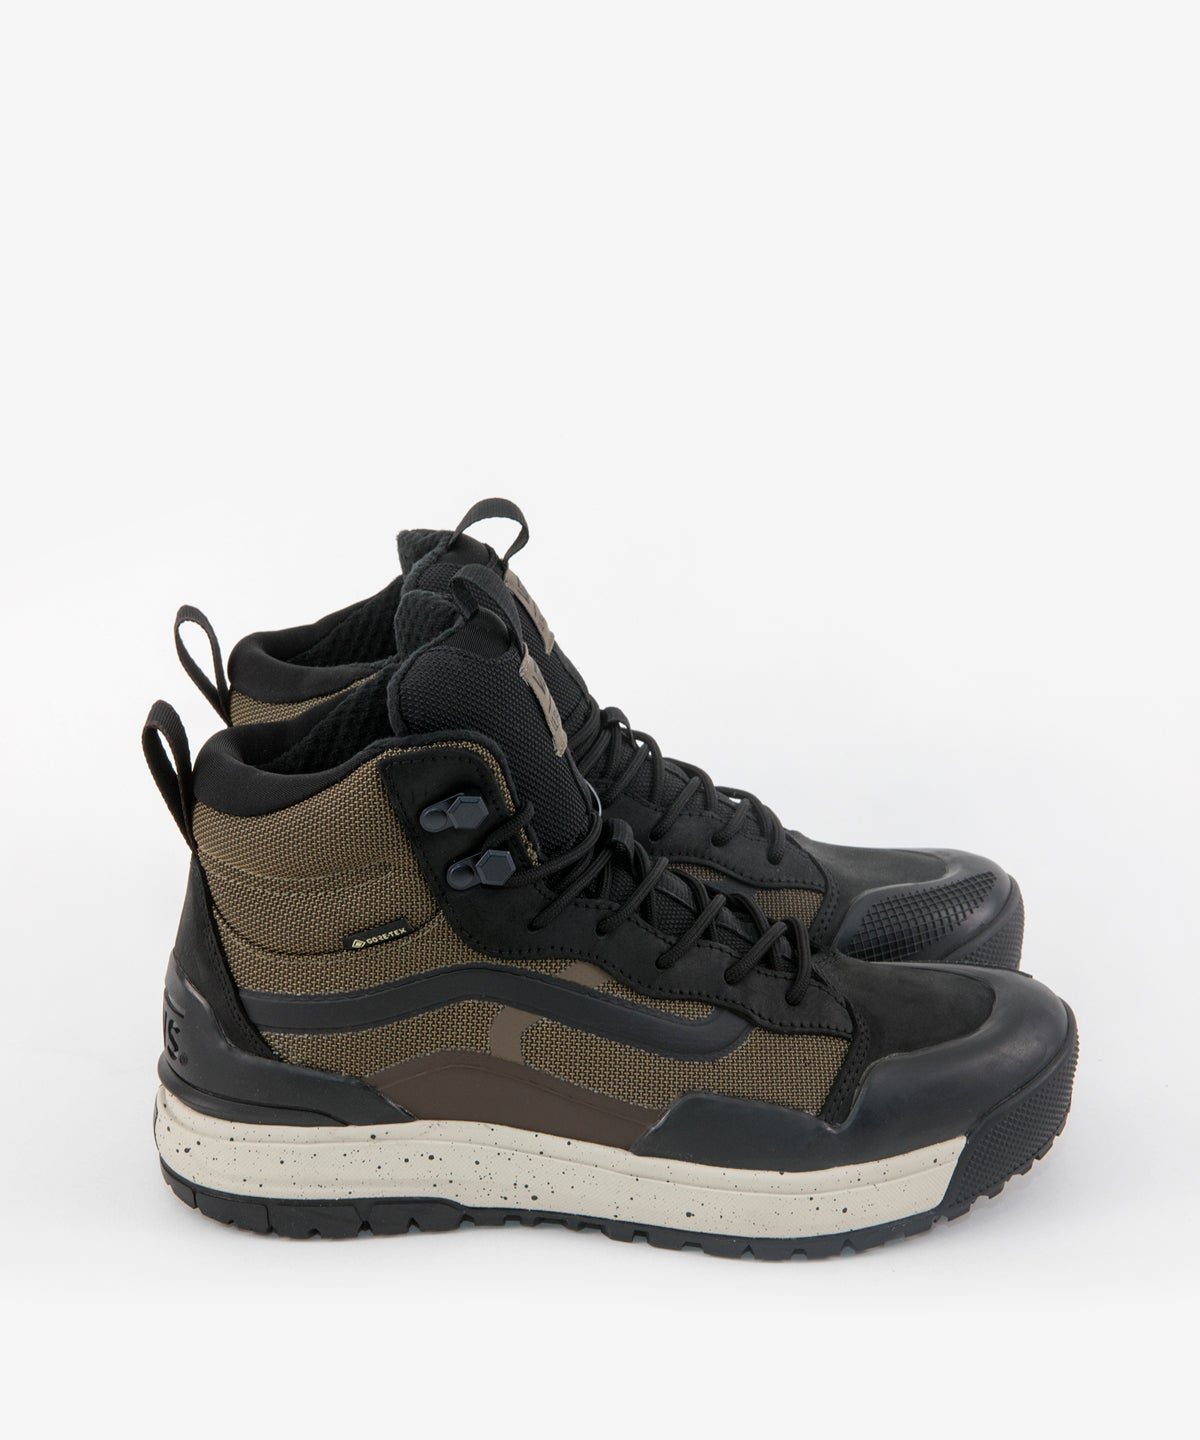 Image of VANS_ULTRARANGE EXO HI MTE GORE-TEX DW :::BROWN/BLACK:::